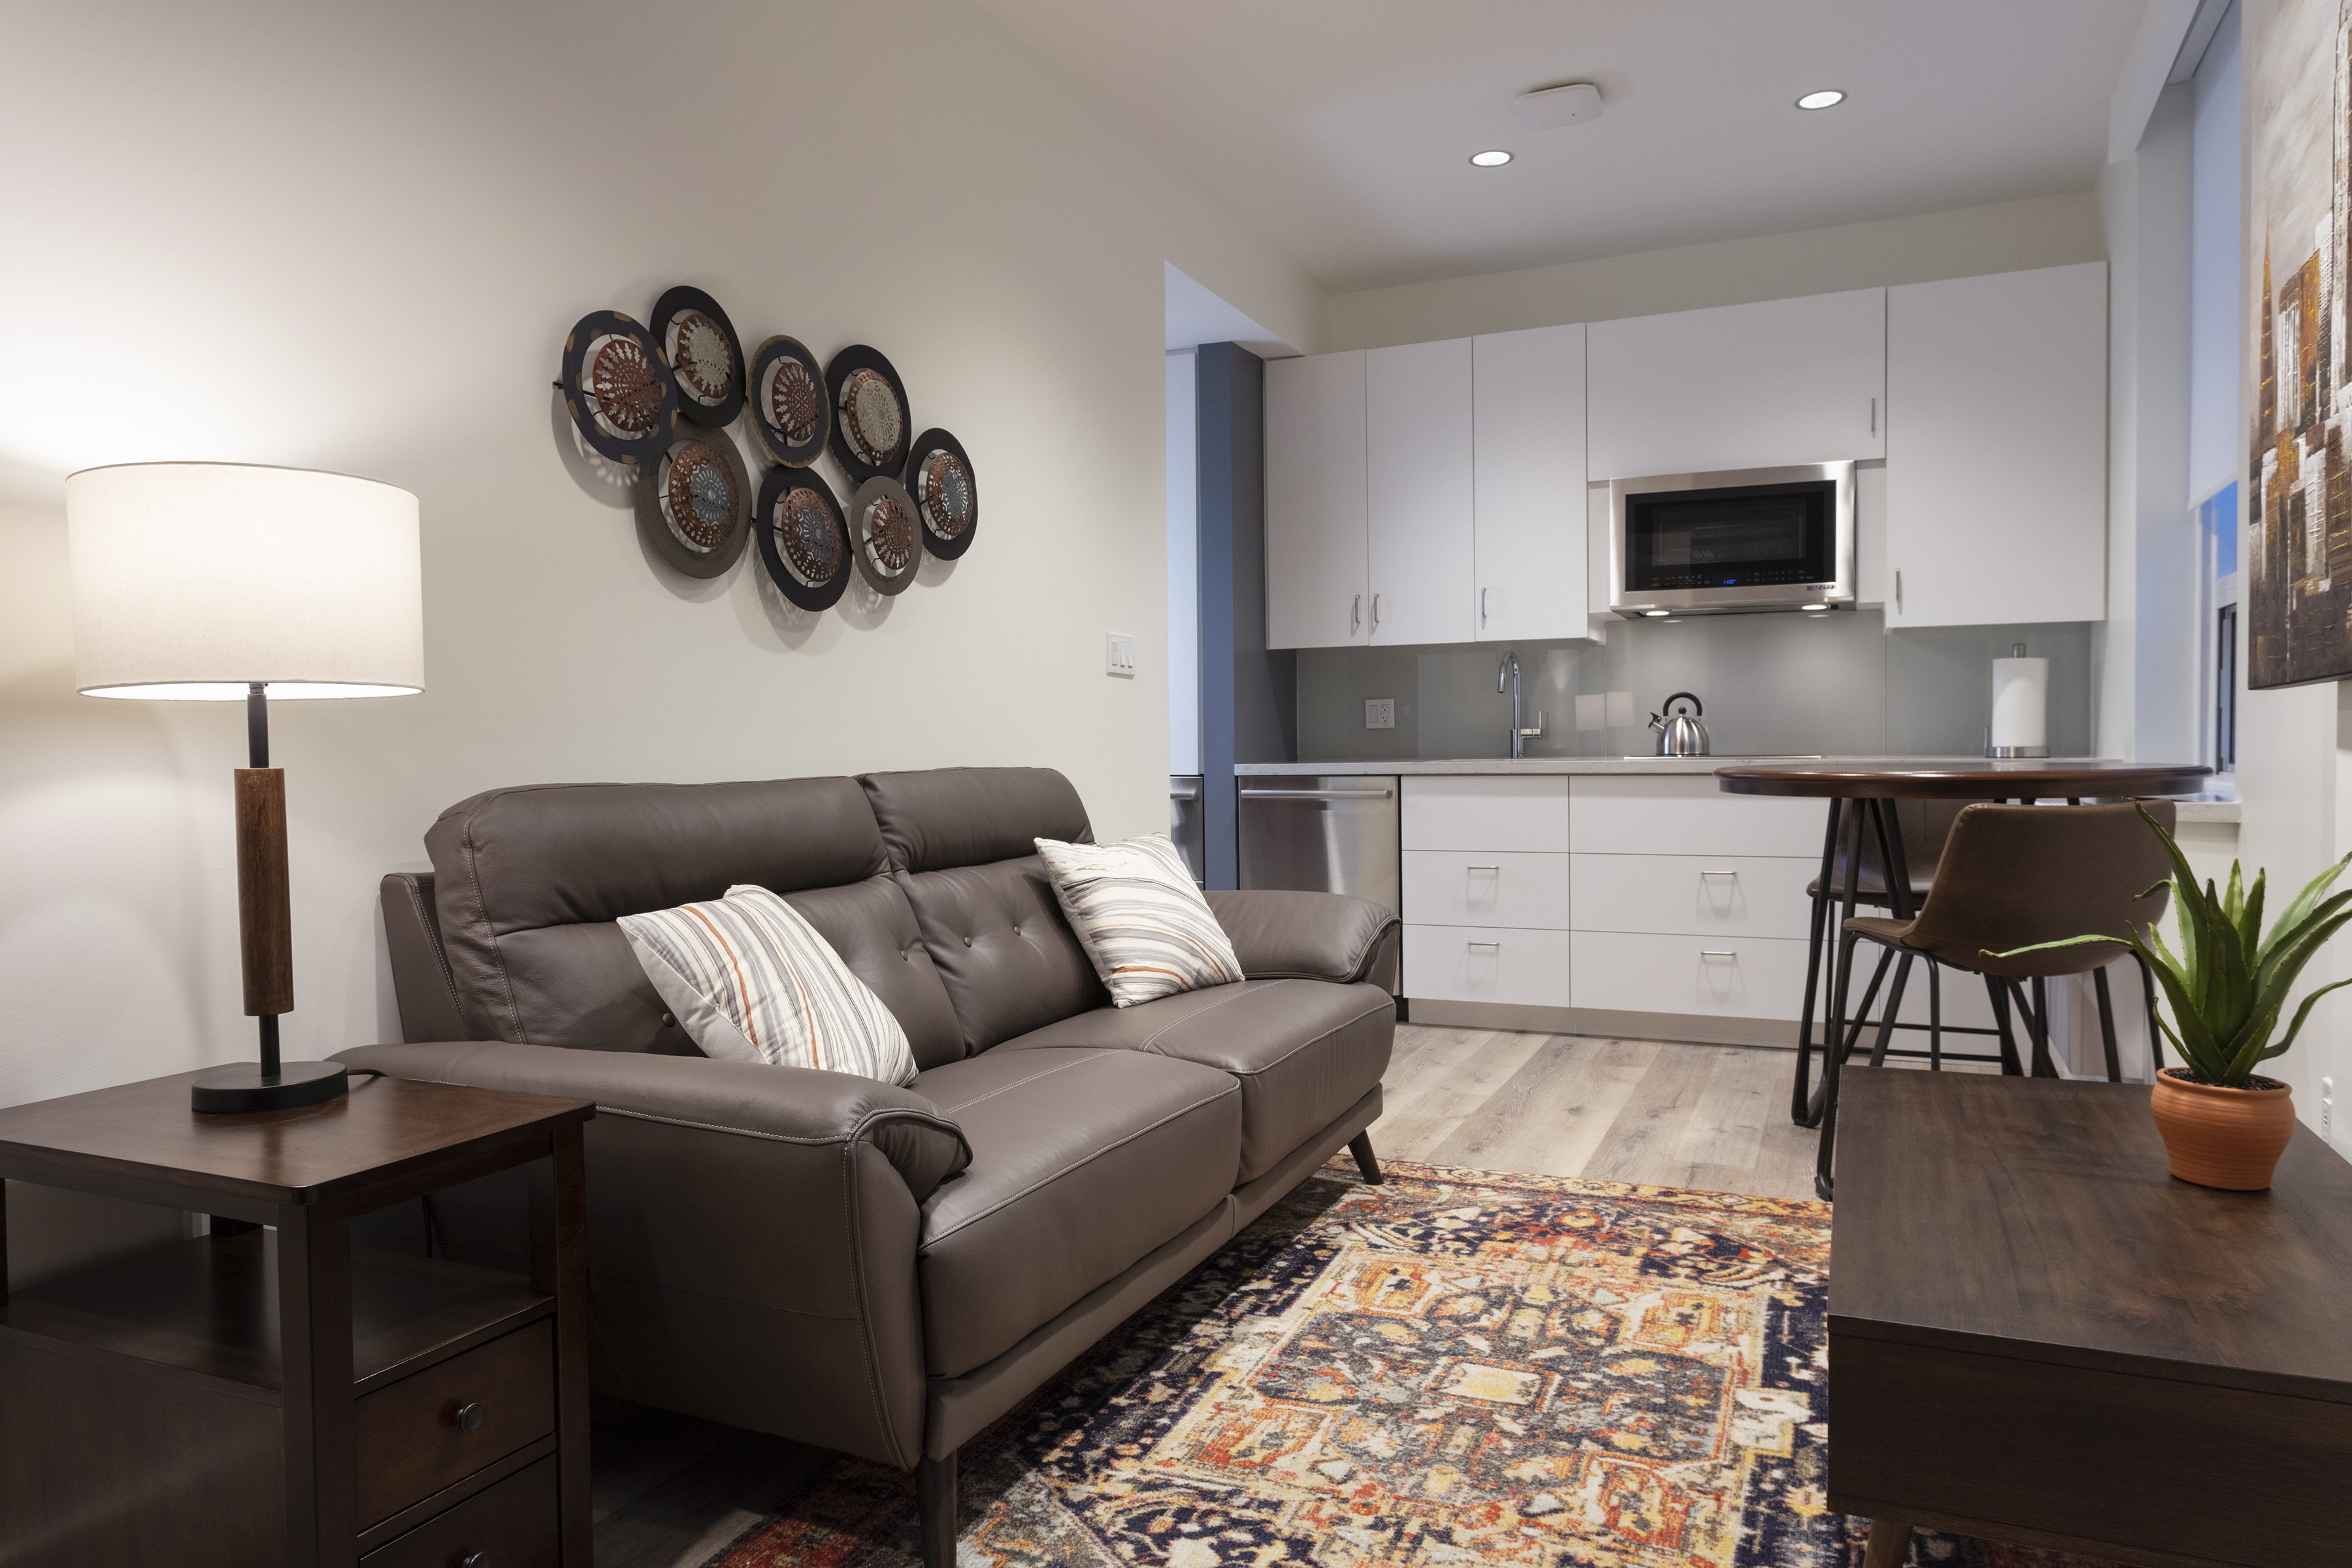 The Mulberry living room and kitchenette